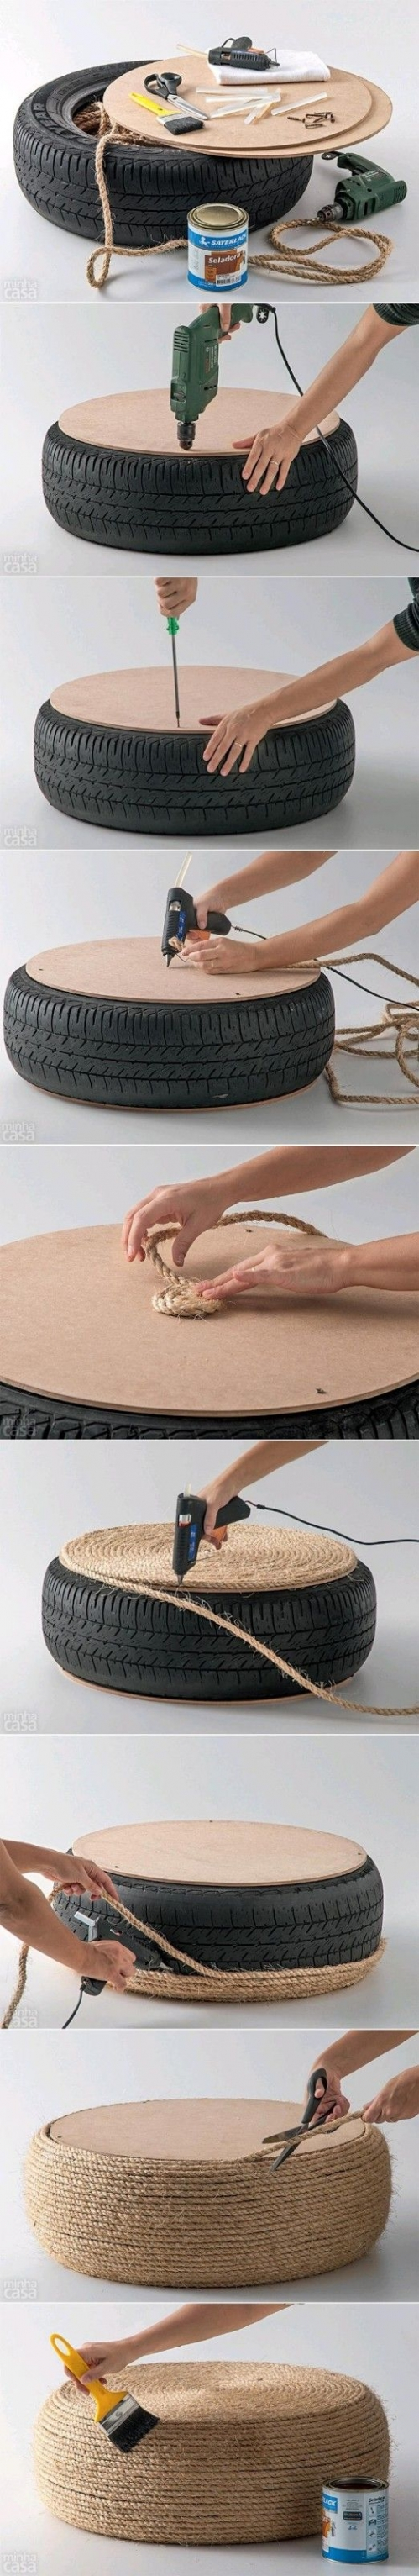 pouf from tire and ropes